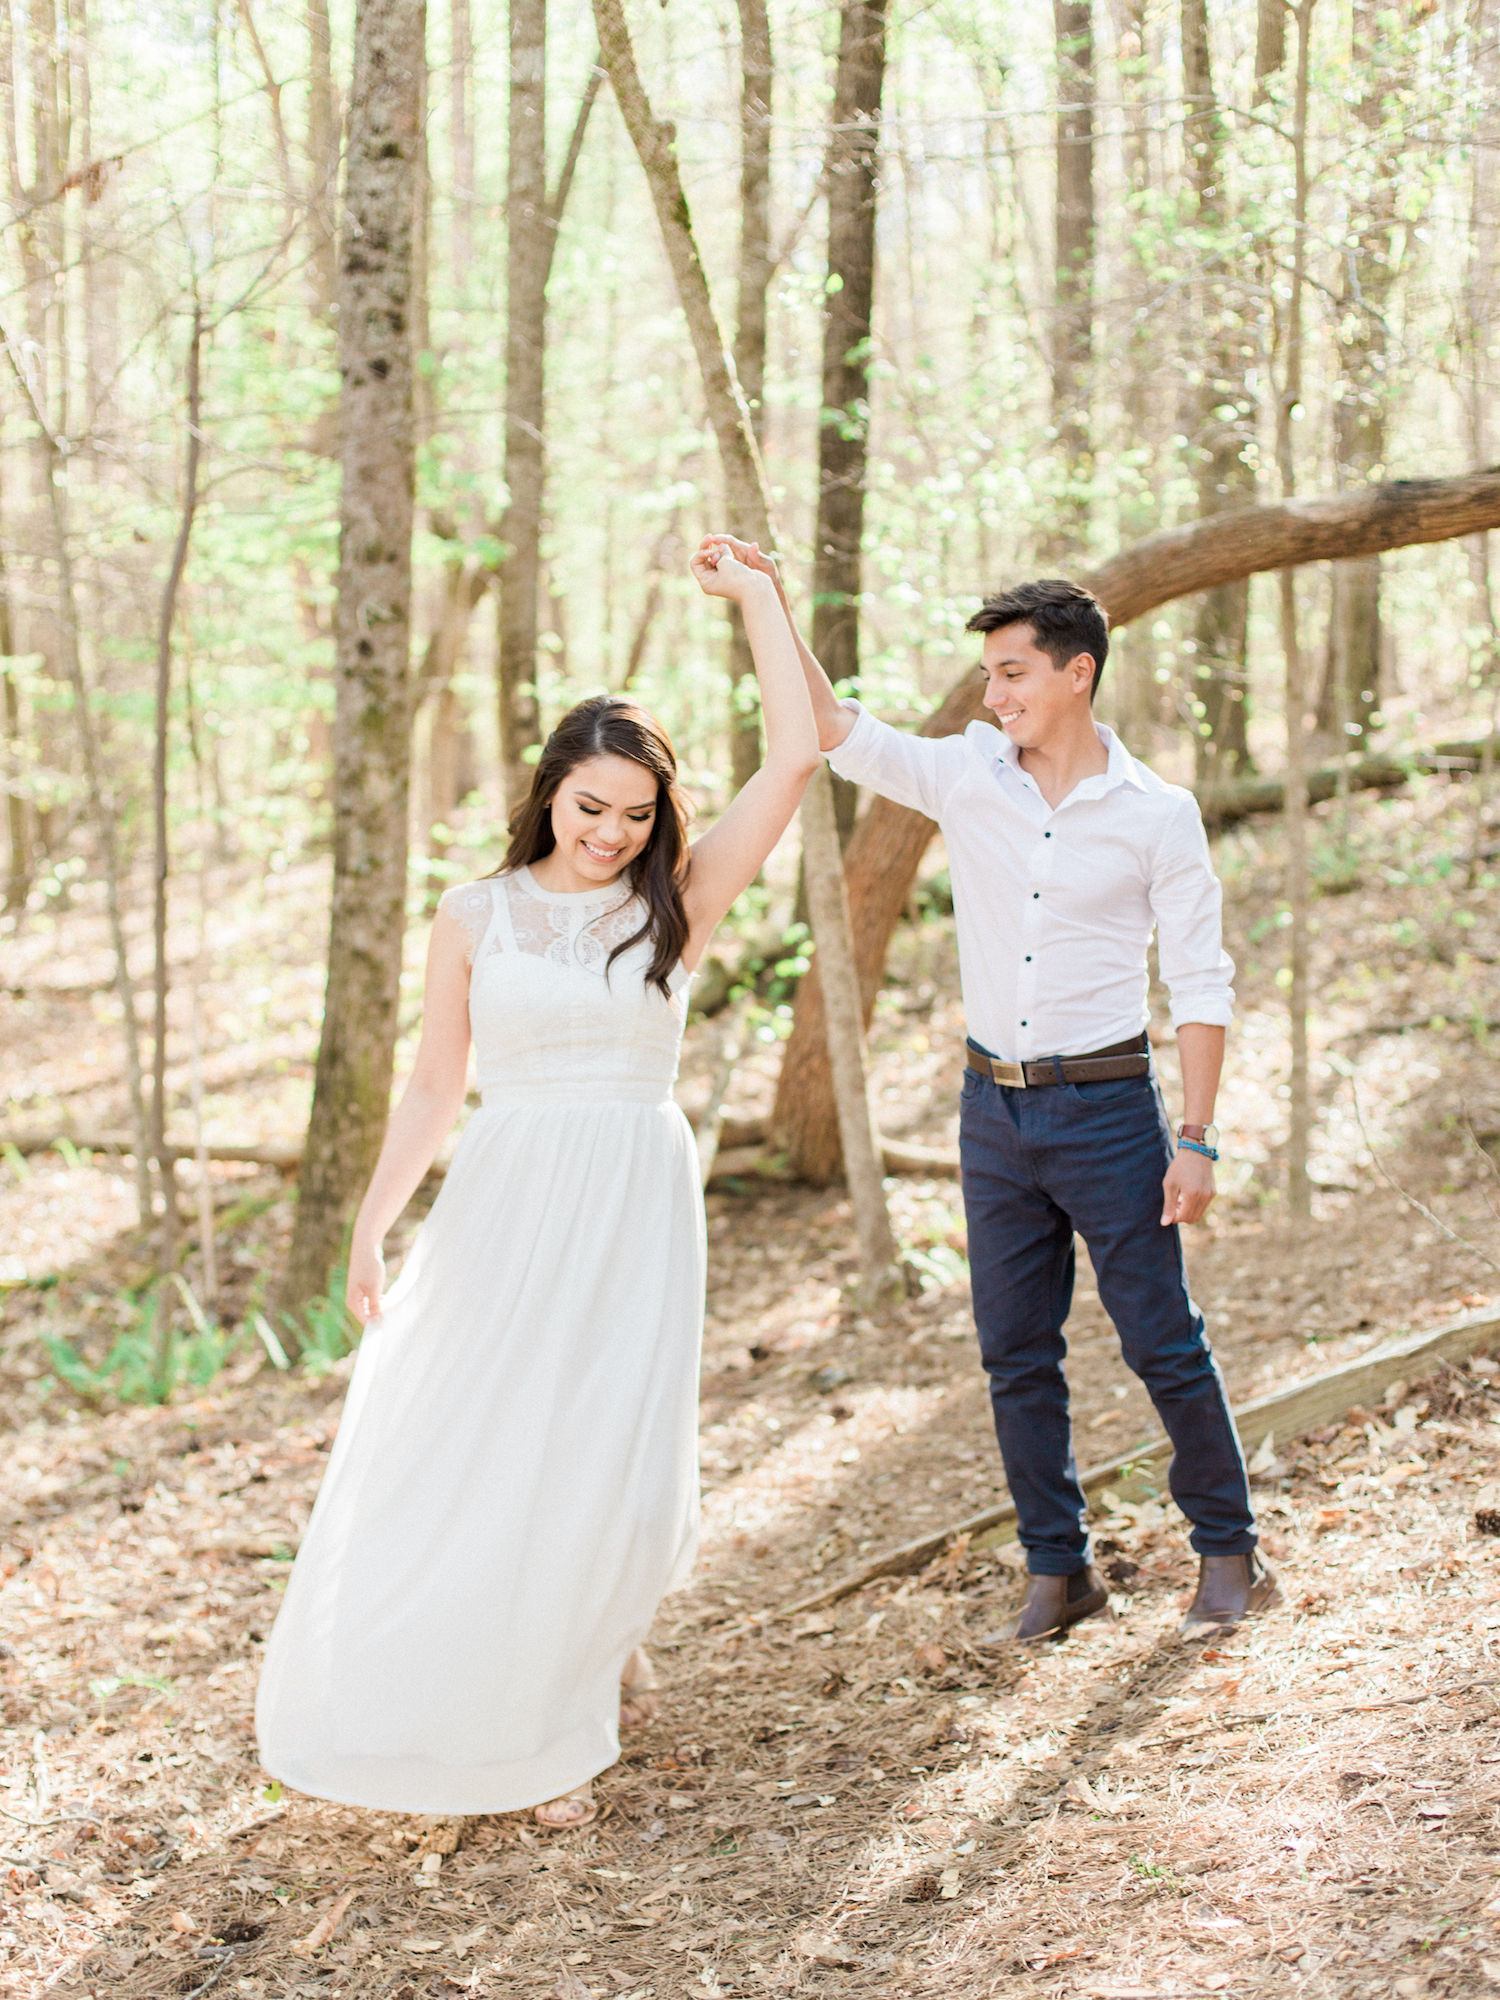 Spring engagement session at Sweetwater Creek State Park in north Georgia. Featuring white, neutral outfits and natural and organic elements.